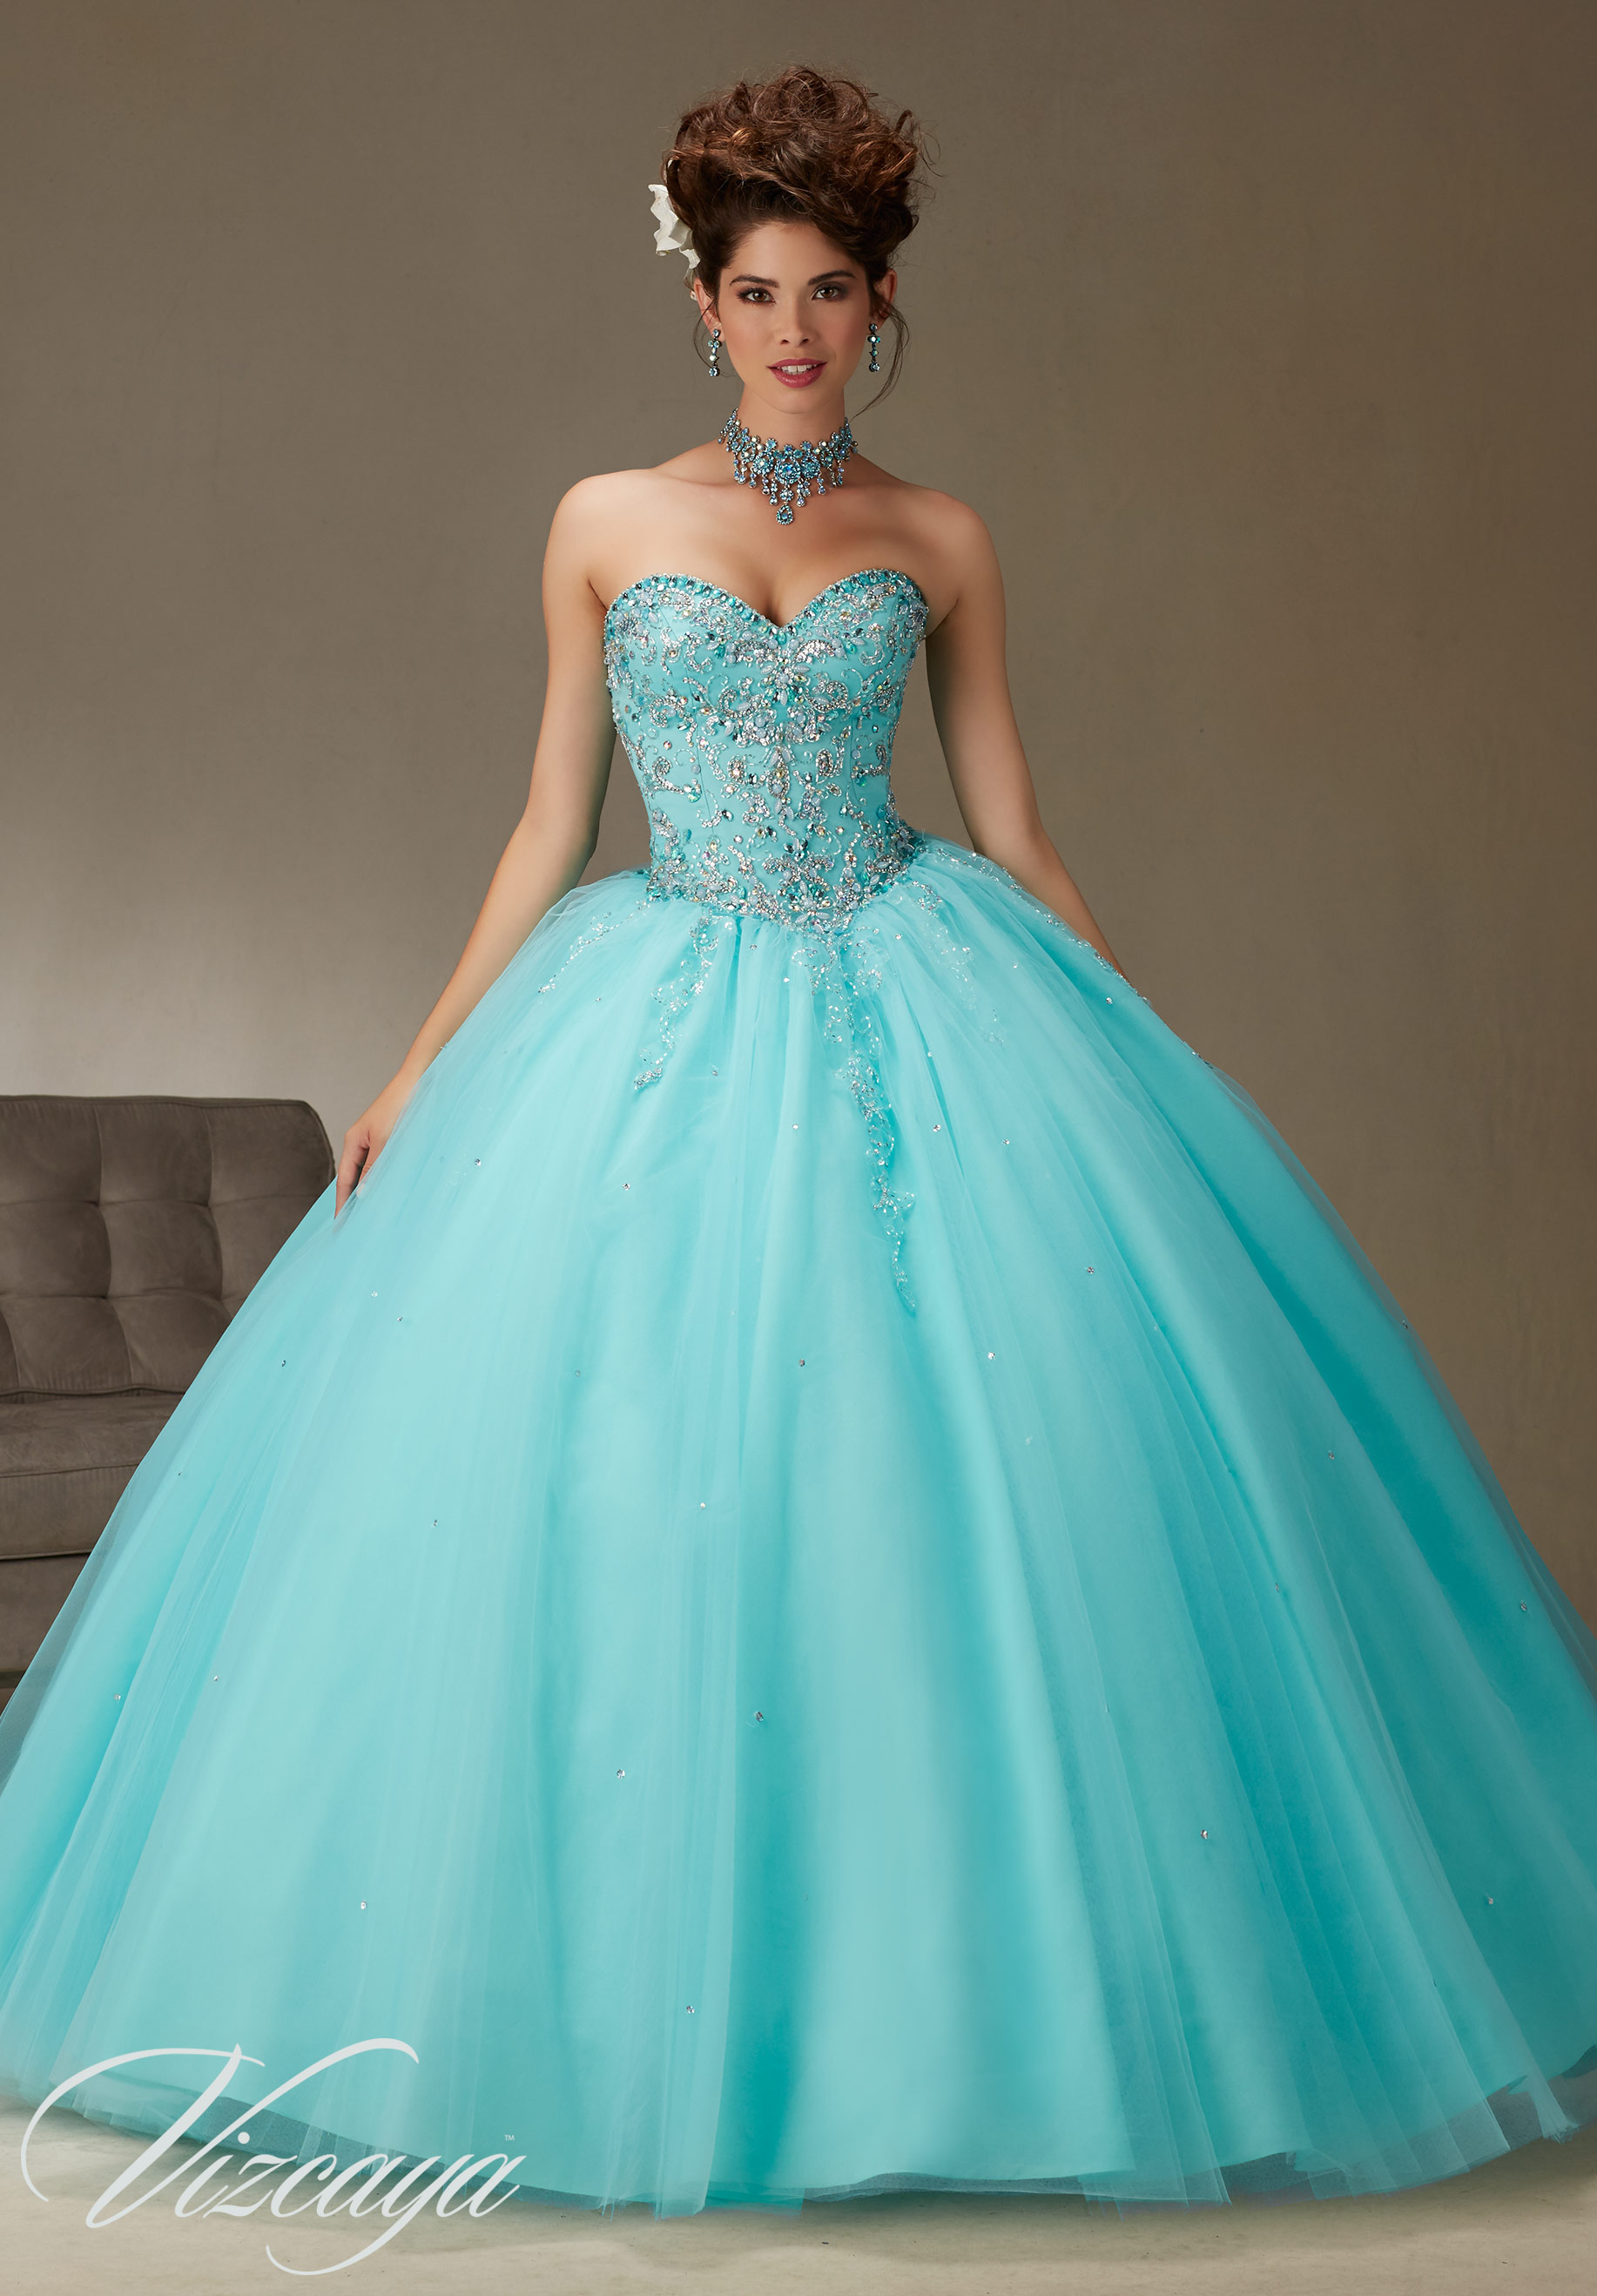 Online Get Cheap Aqua Blue Quinceanera Dresses -Aliexpress.com ...